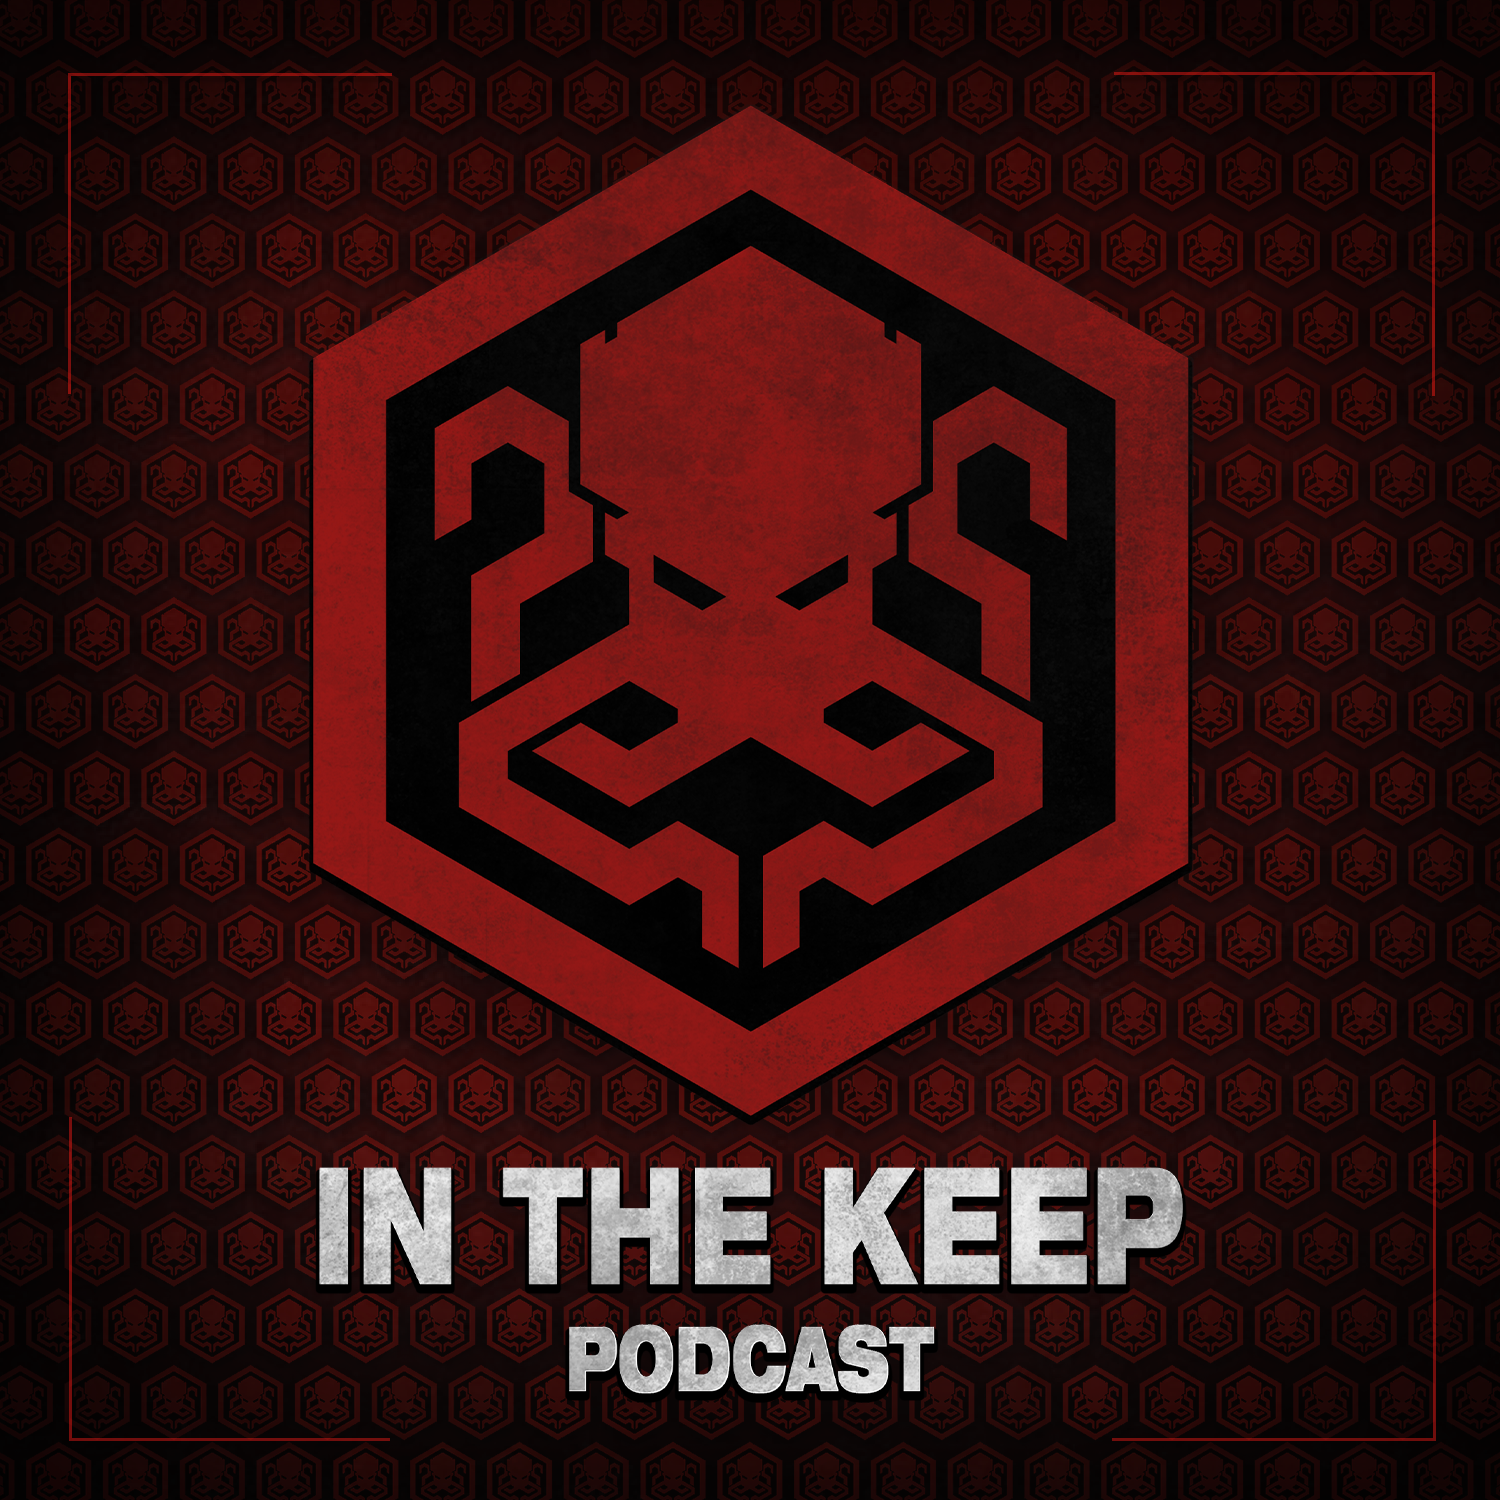 In The Keep Podcast - #95 Kaapeli47 (Golds of FPS)